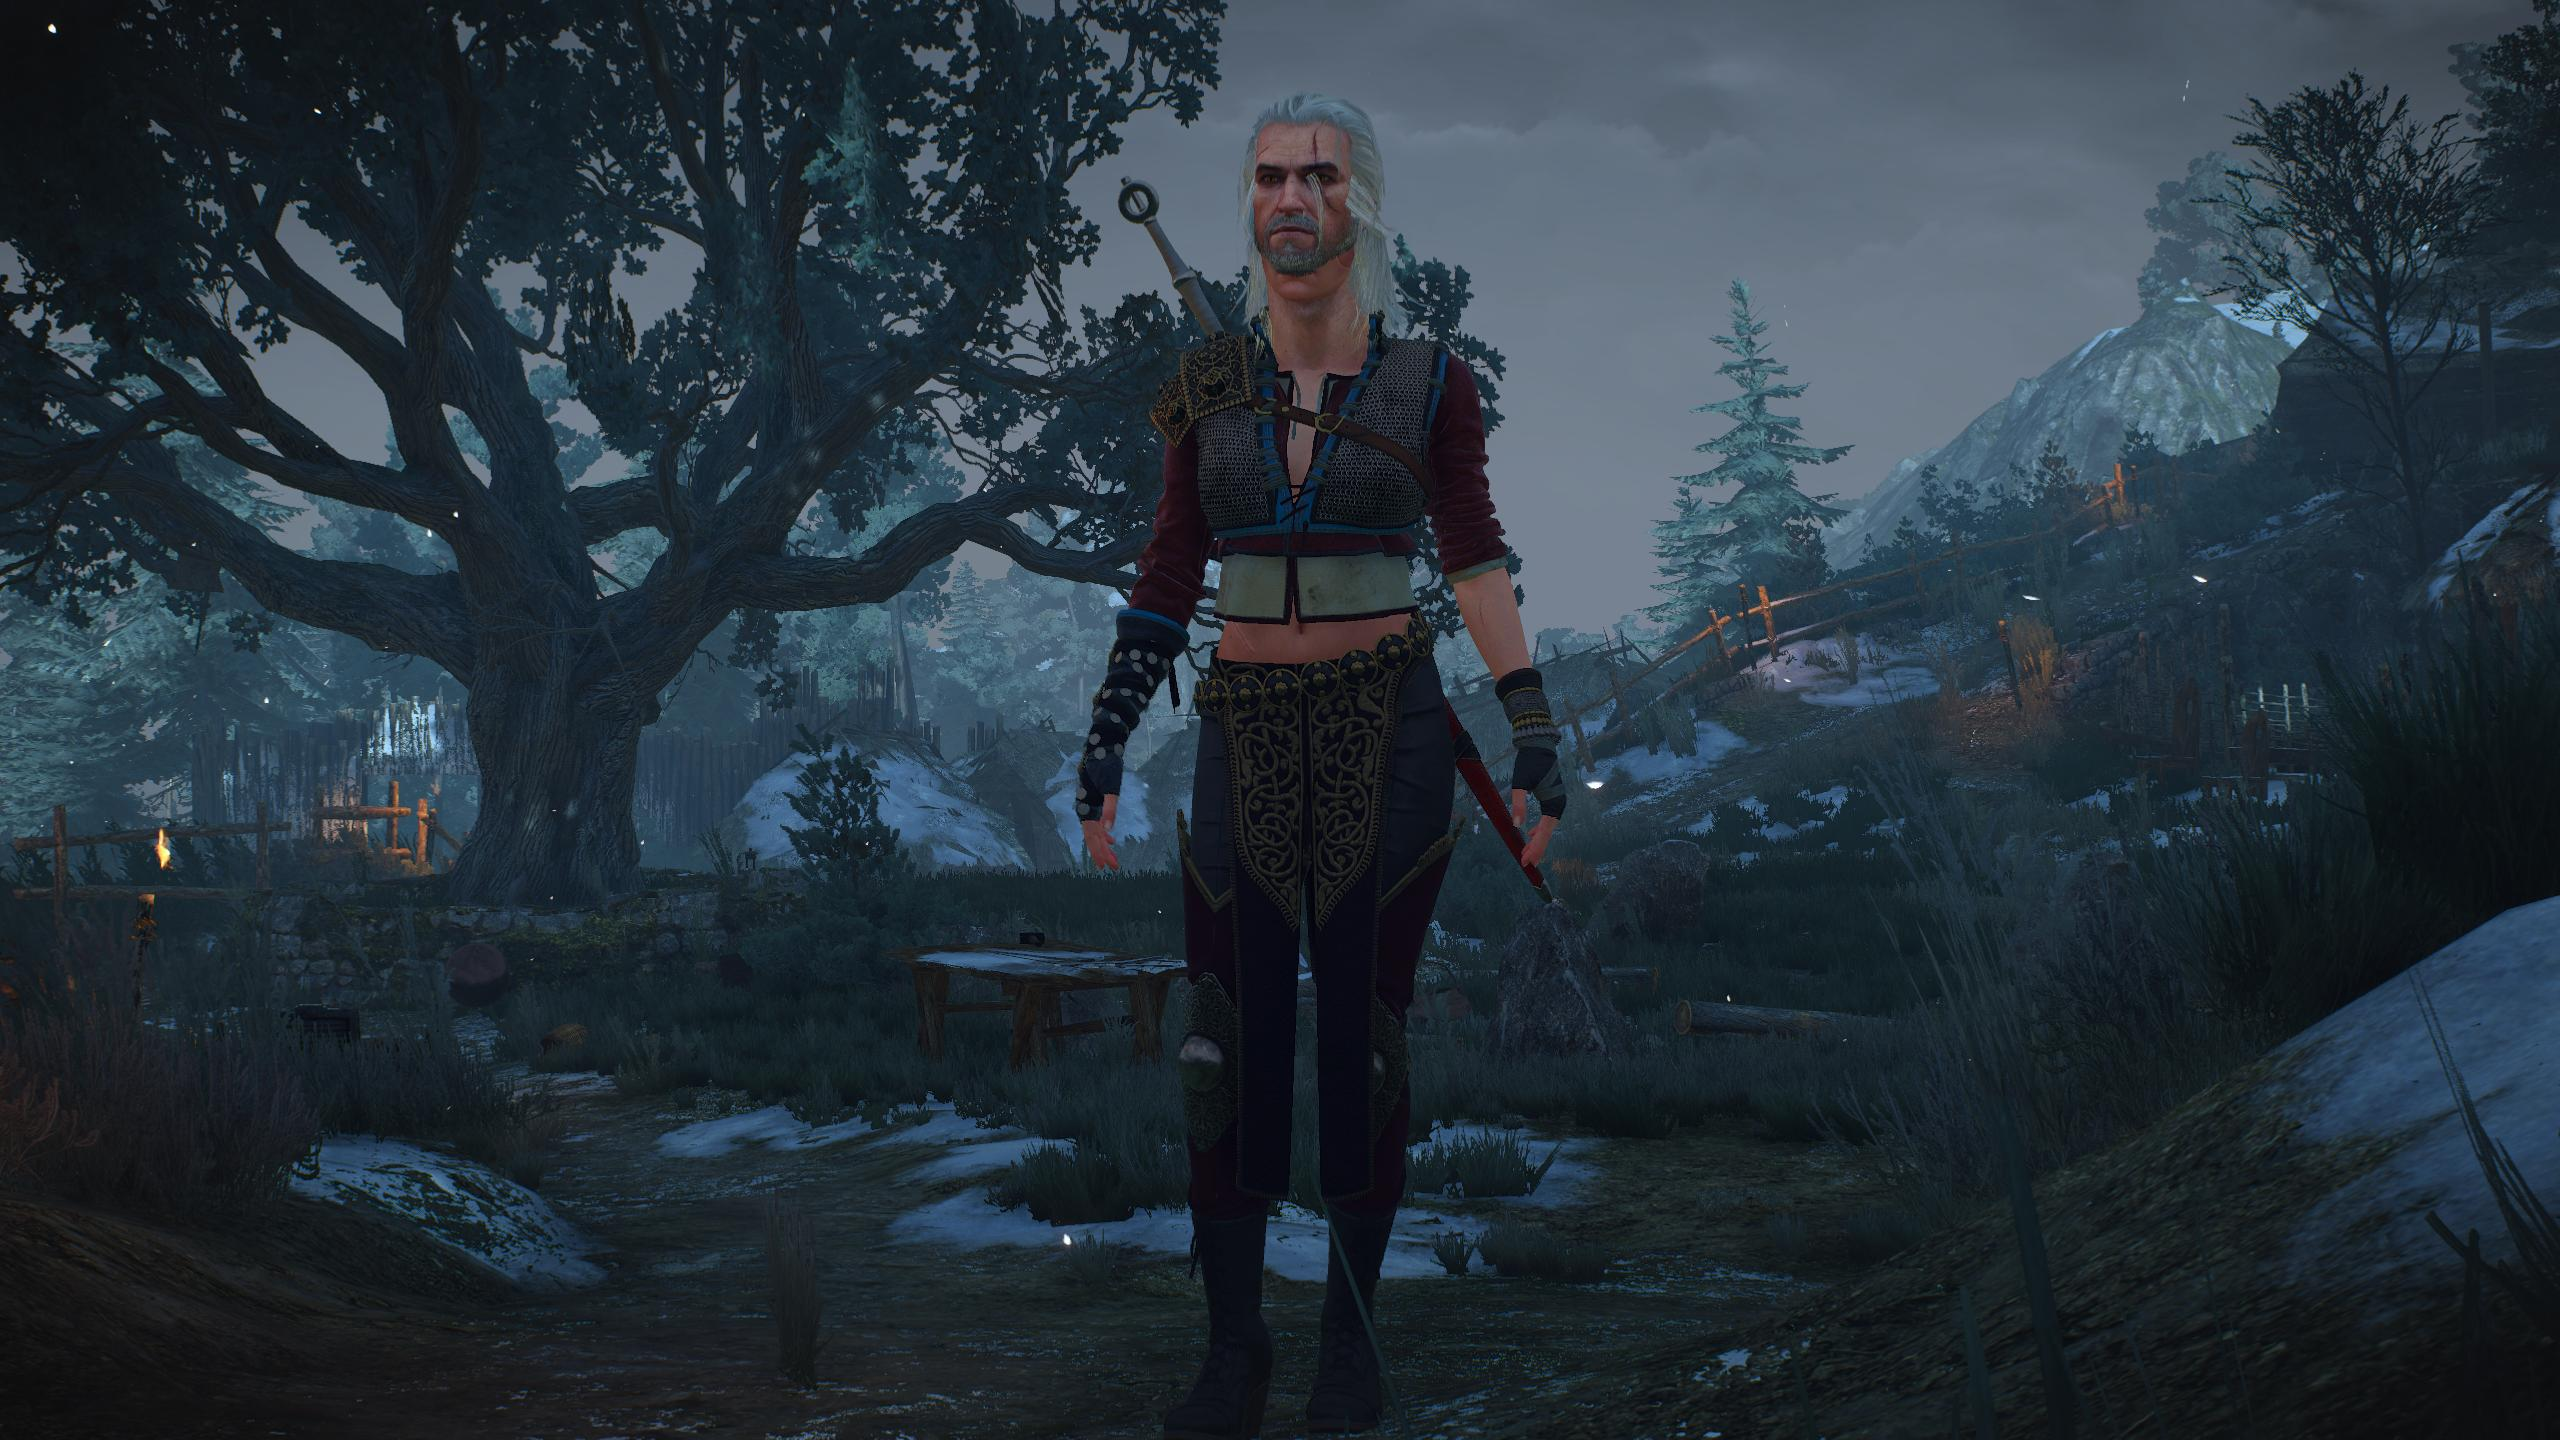 Downaload Ciri The Witcher Wild Hunt artwork video game